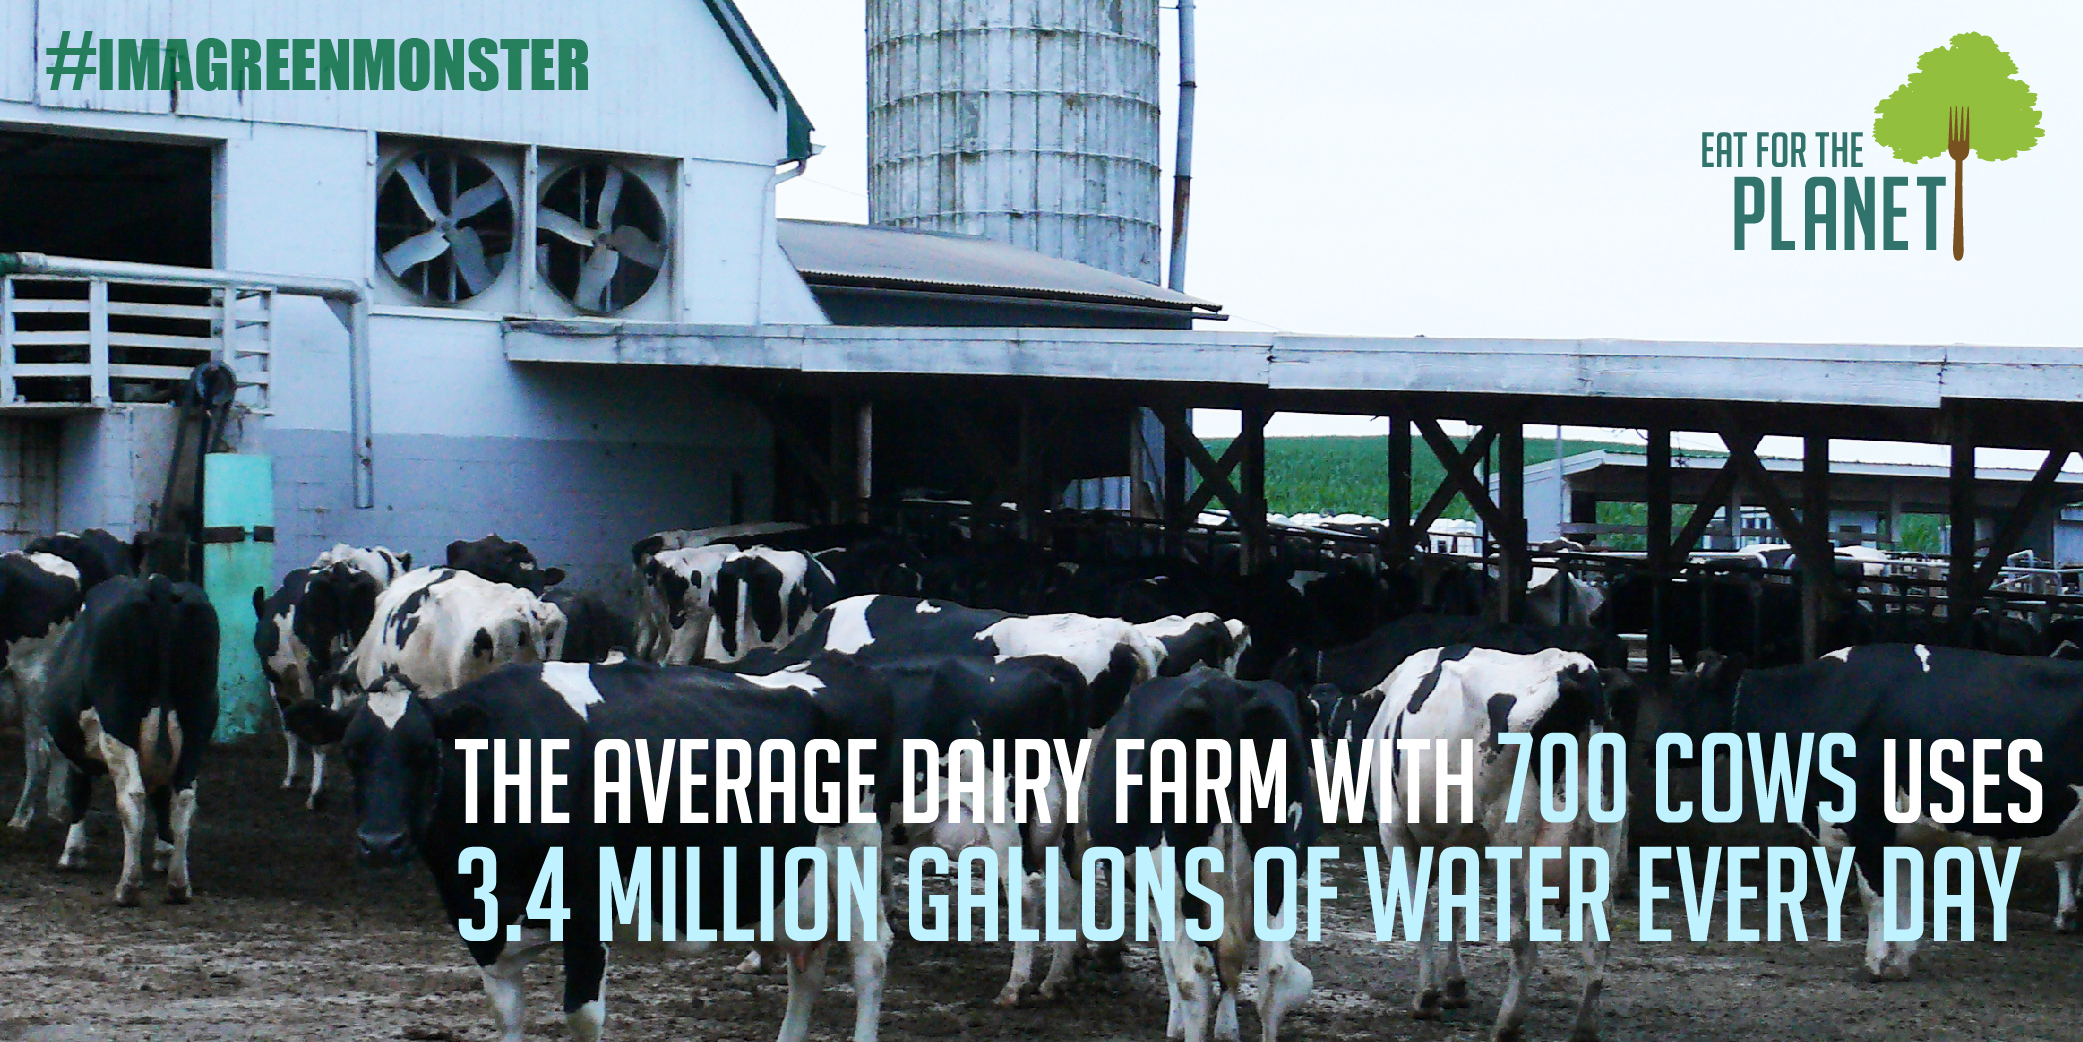 Milk Life? How About Milk Destruction ... How the Dairy Industry is Eating Up the Planet